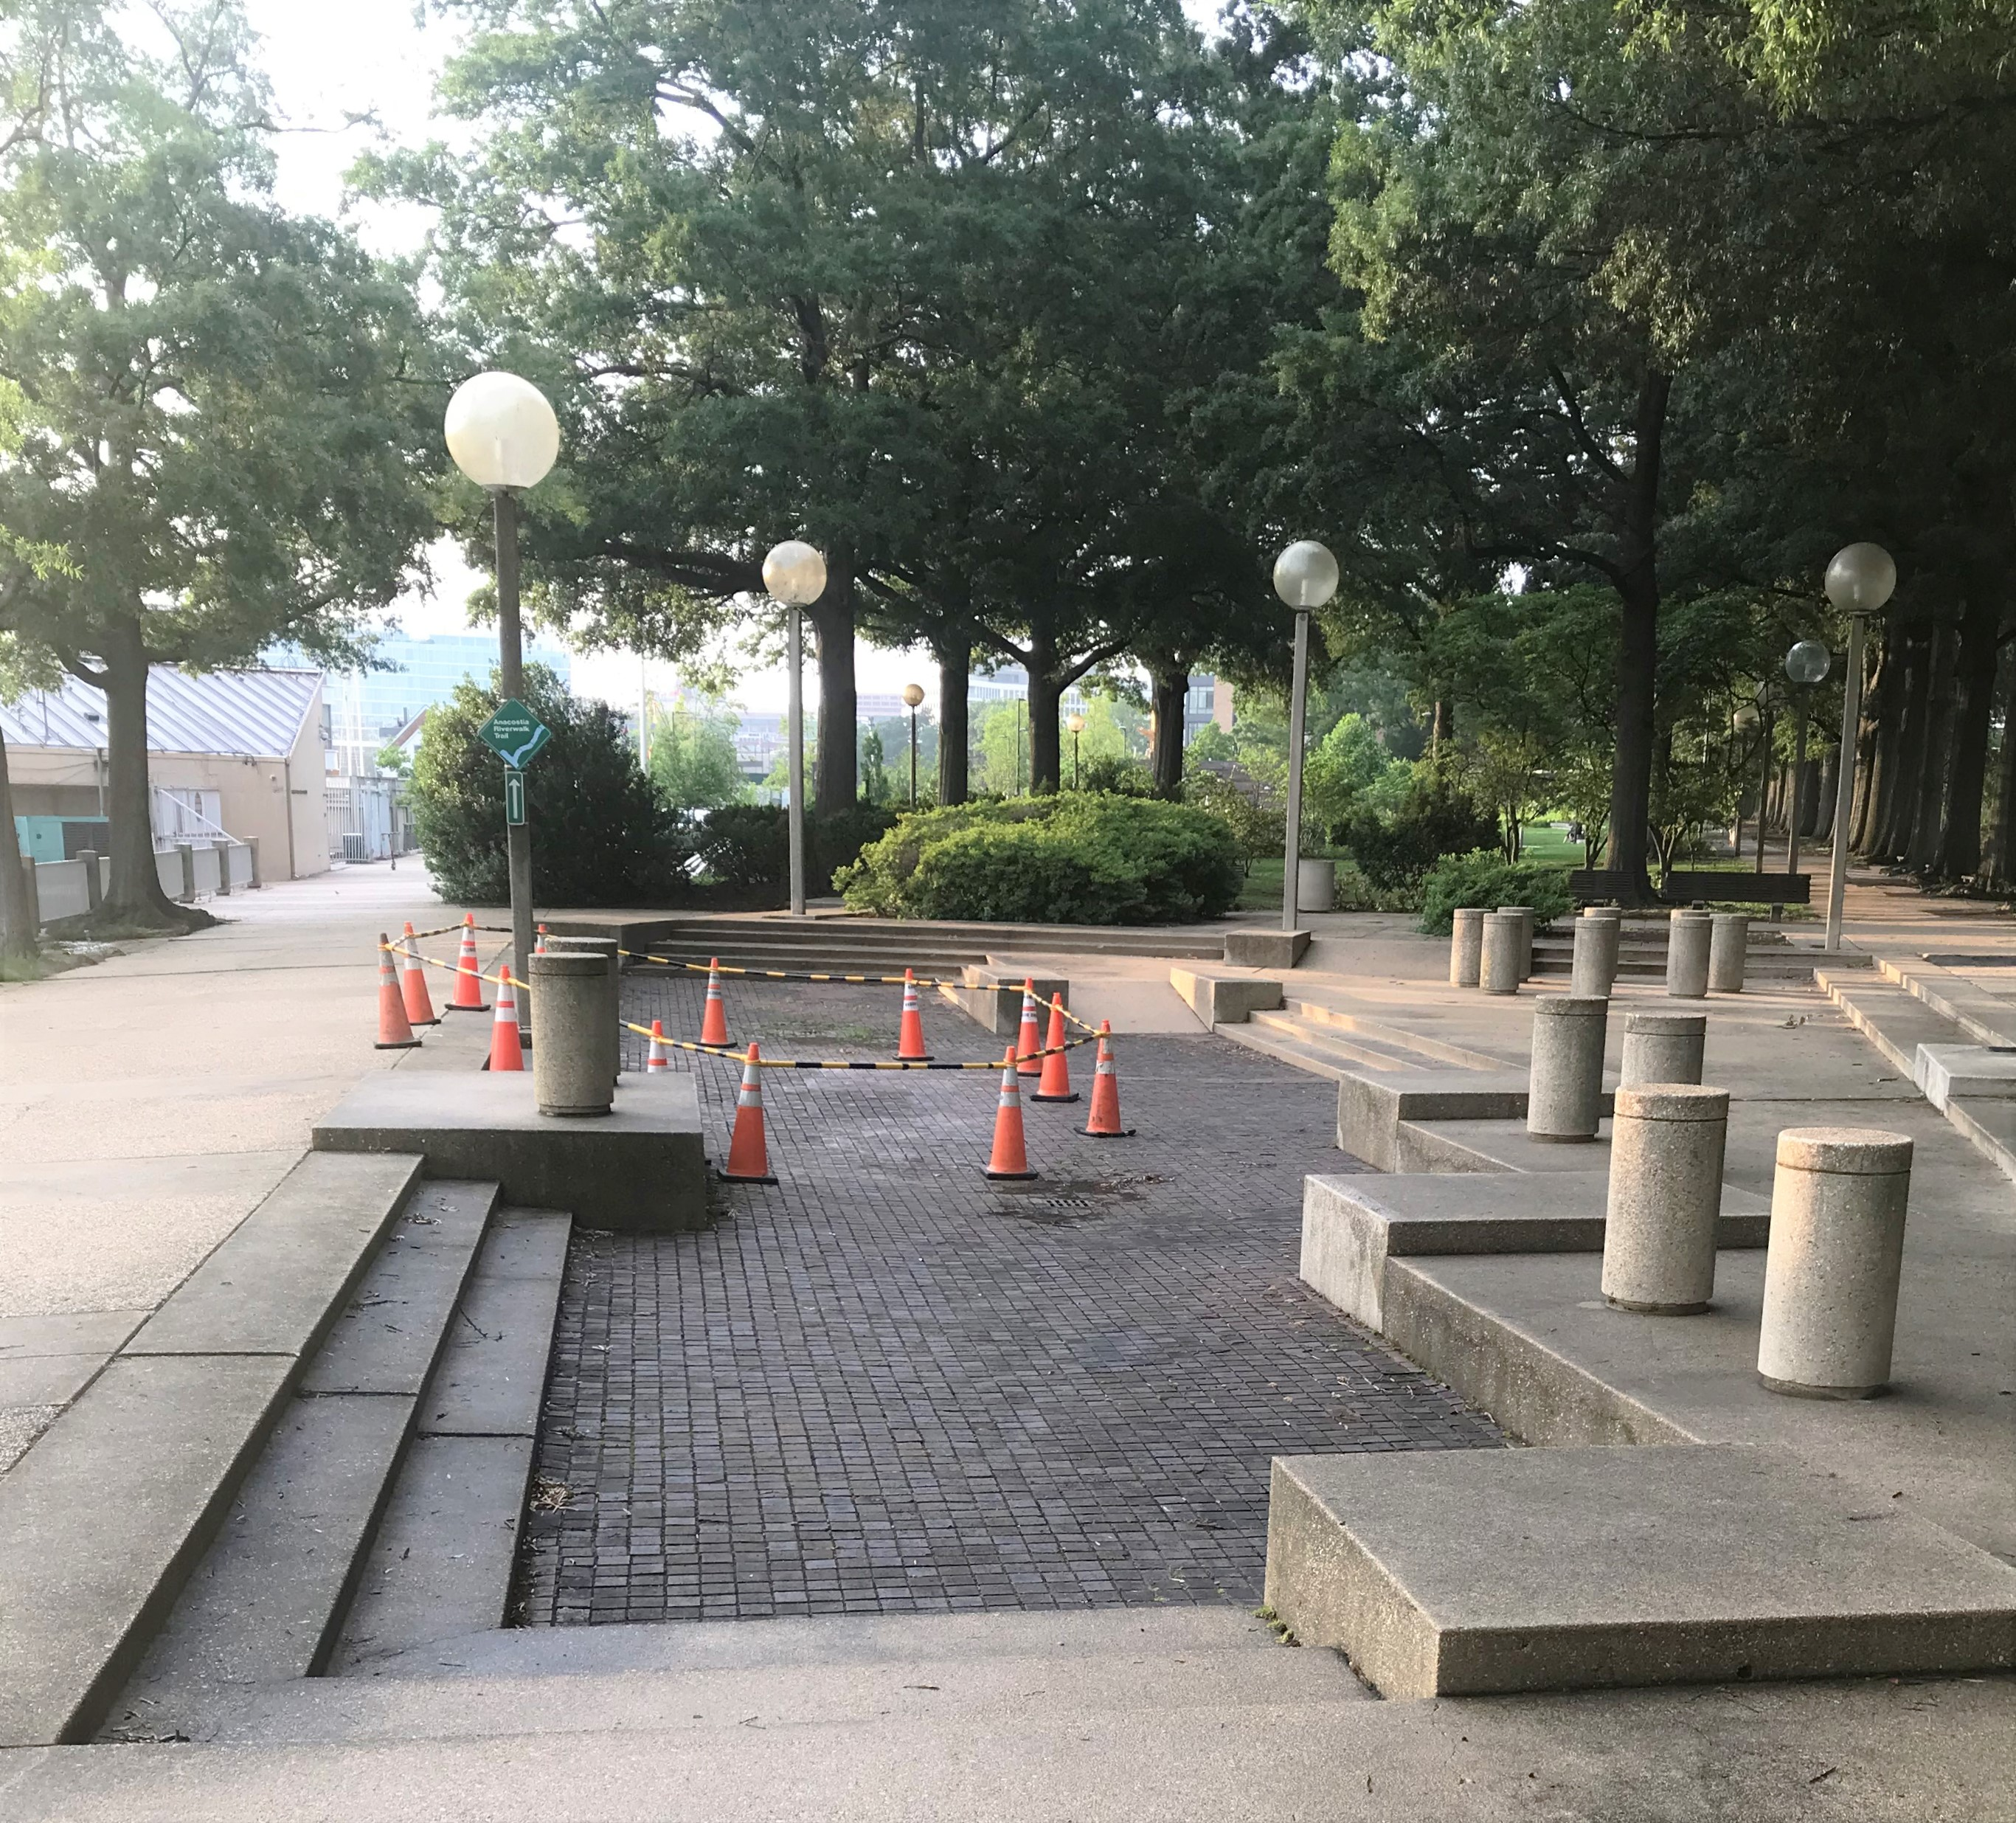 Tile work begins in the Park